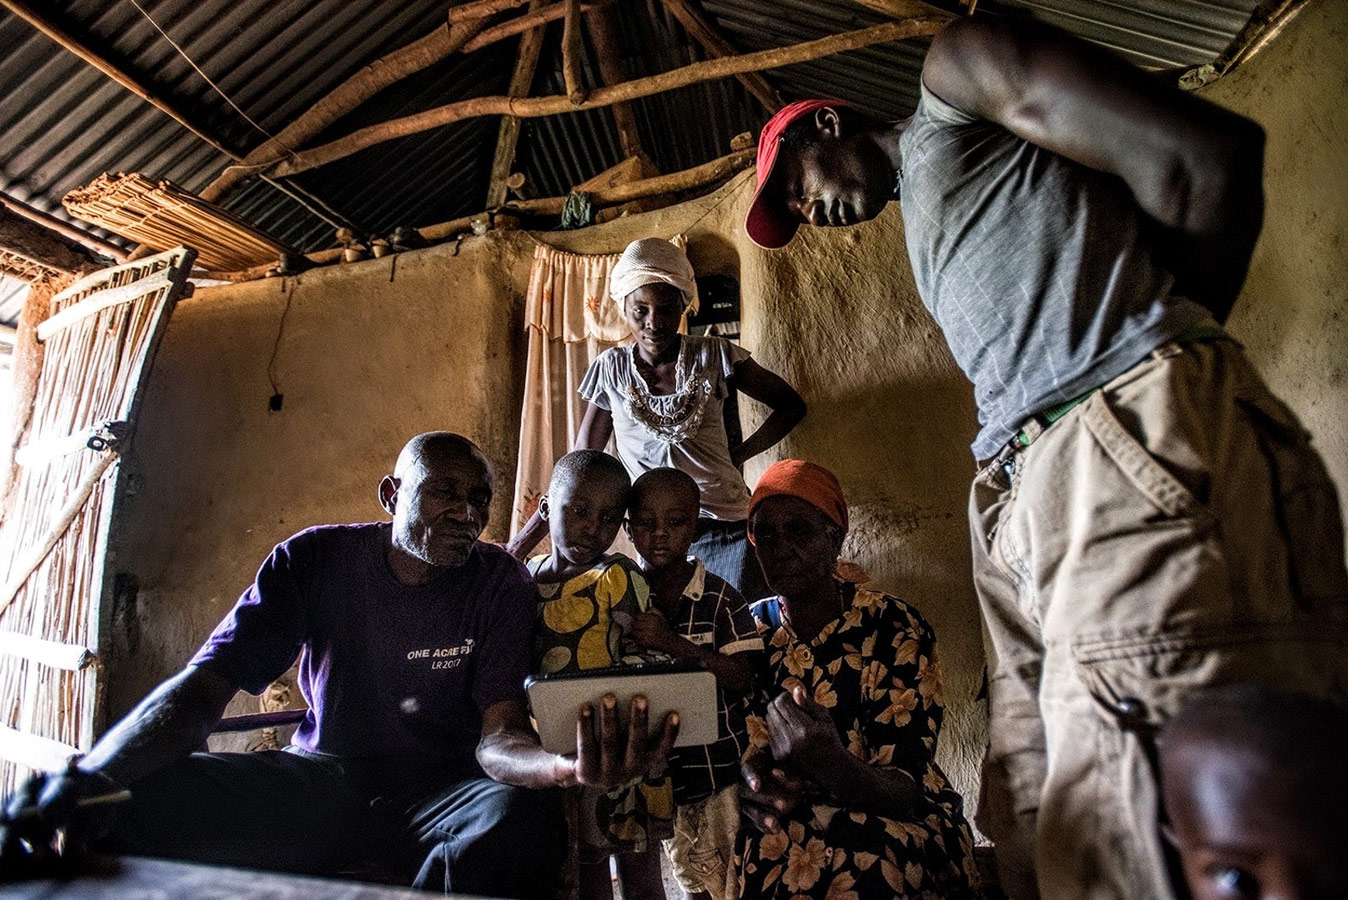 Video Marketing With Tablets, © Hailey Tucker, Kenya, Regional Winner: Africa, CGAP Photo and Video Contest